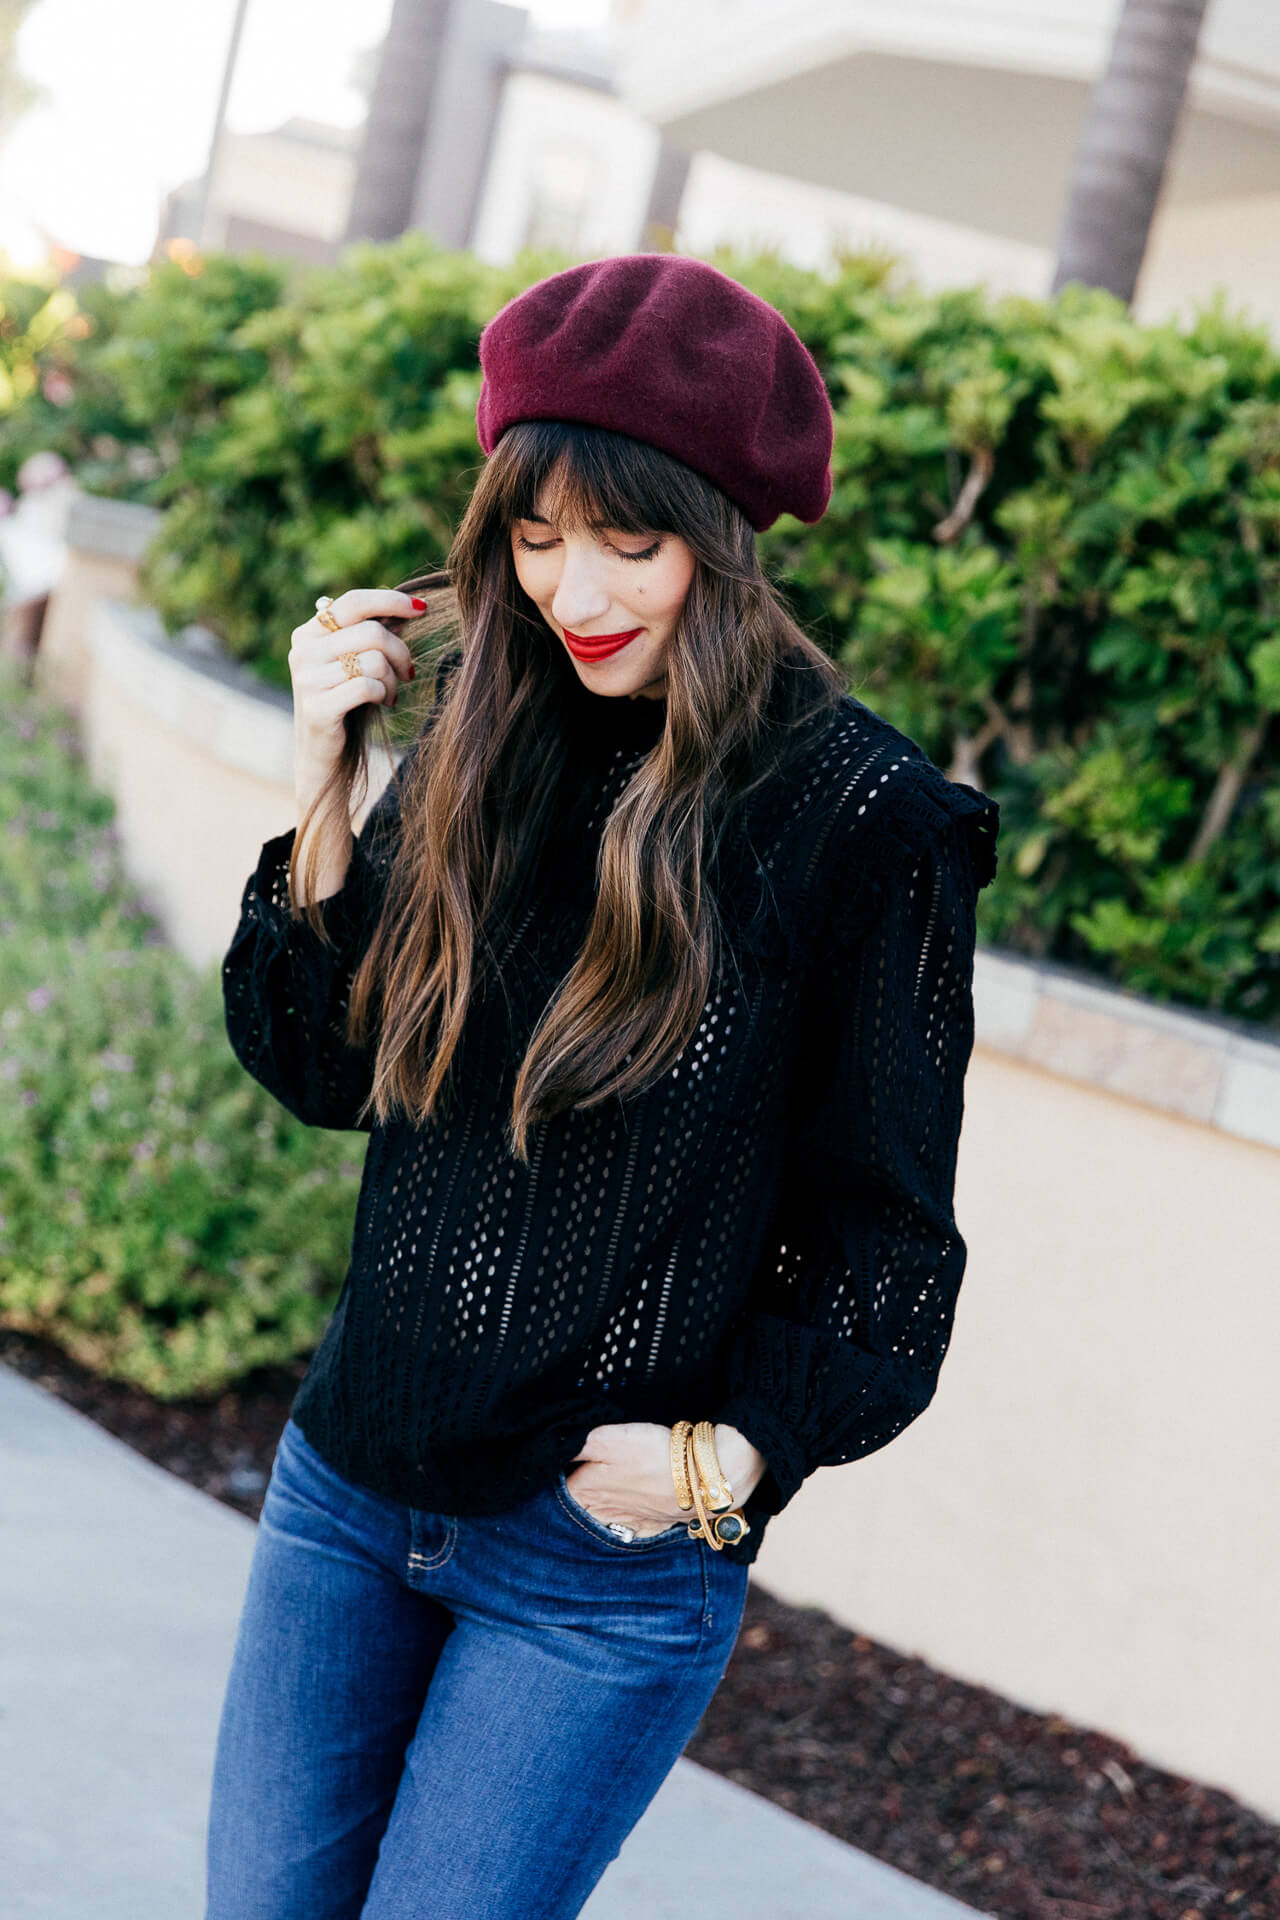 Fall date outfit inspiration! | M Loves M @marmar